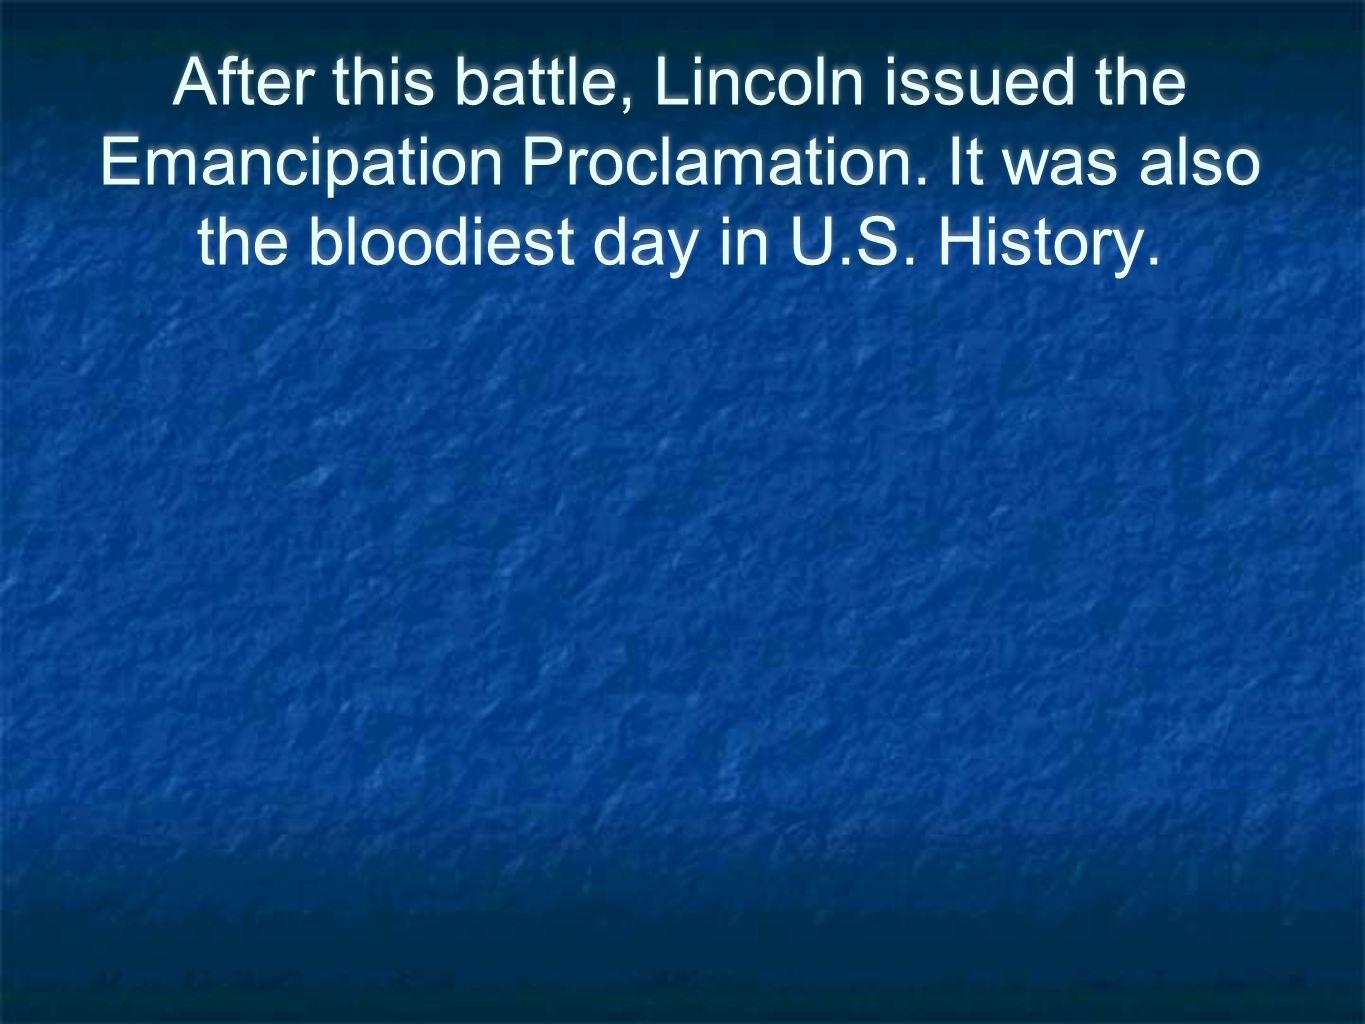 After this battle, Lincoln issued the Emancipation Proclamation.